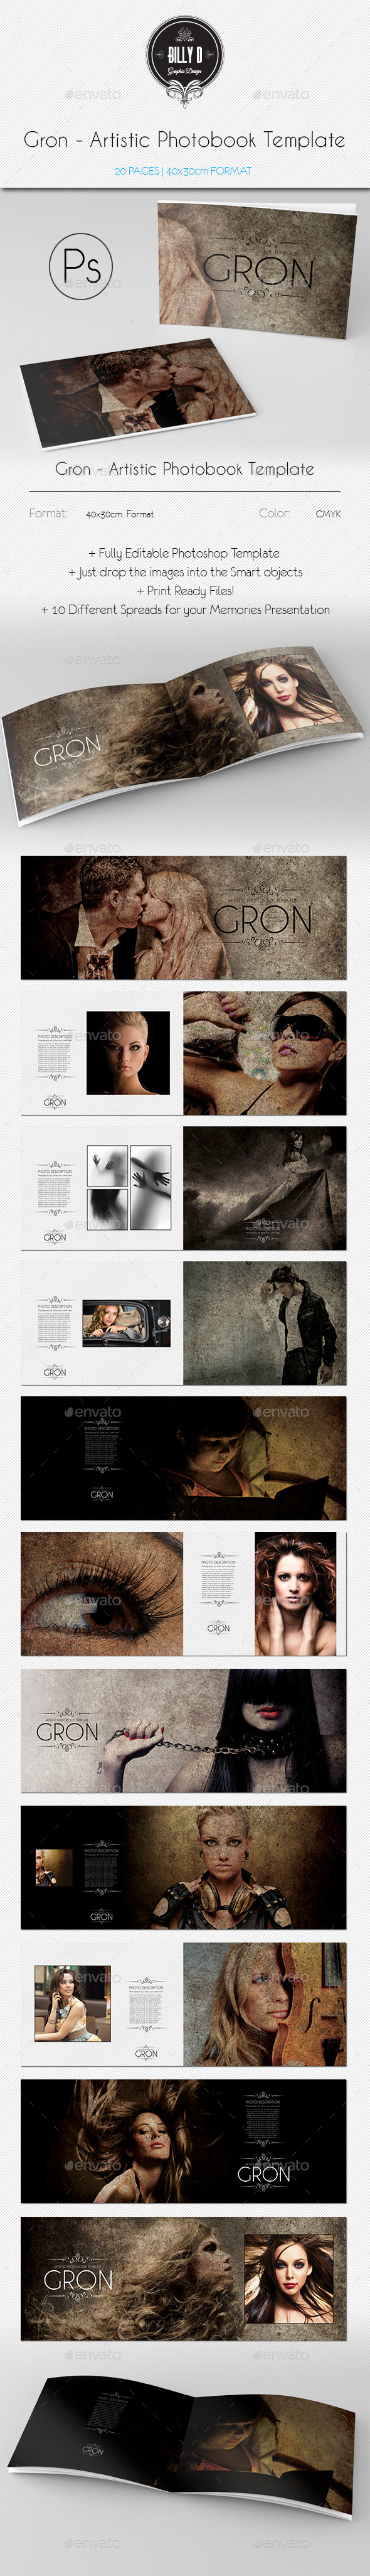 GraphicRiver Gron Artistic Photobook Template 10054915